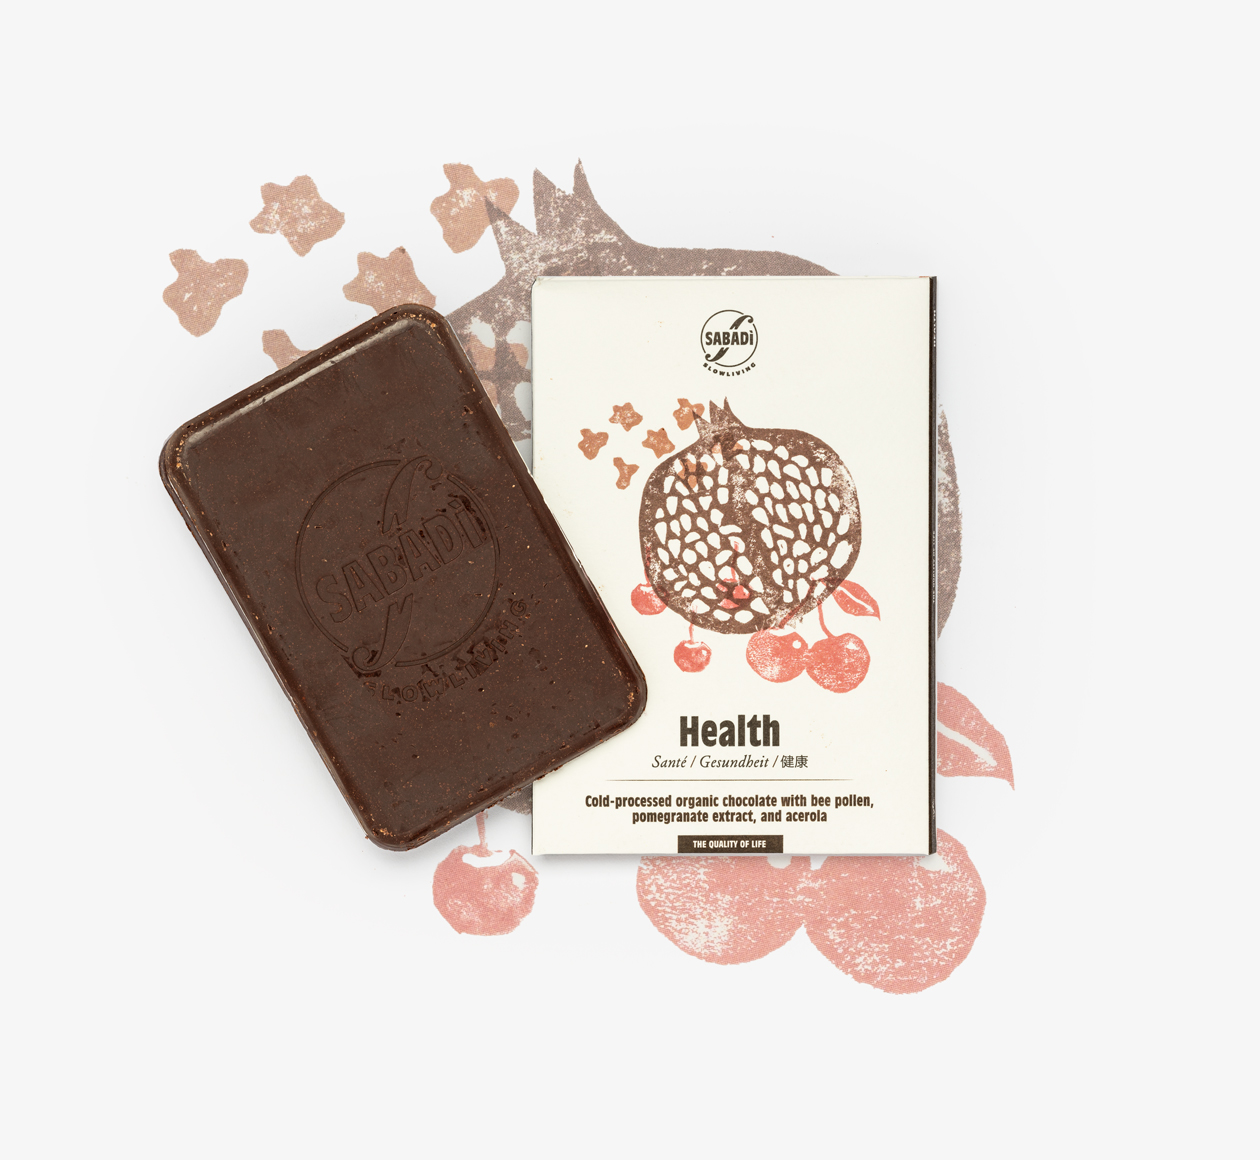 Sabadi health chocolate on Bookblock